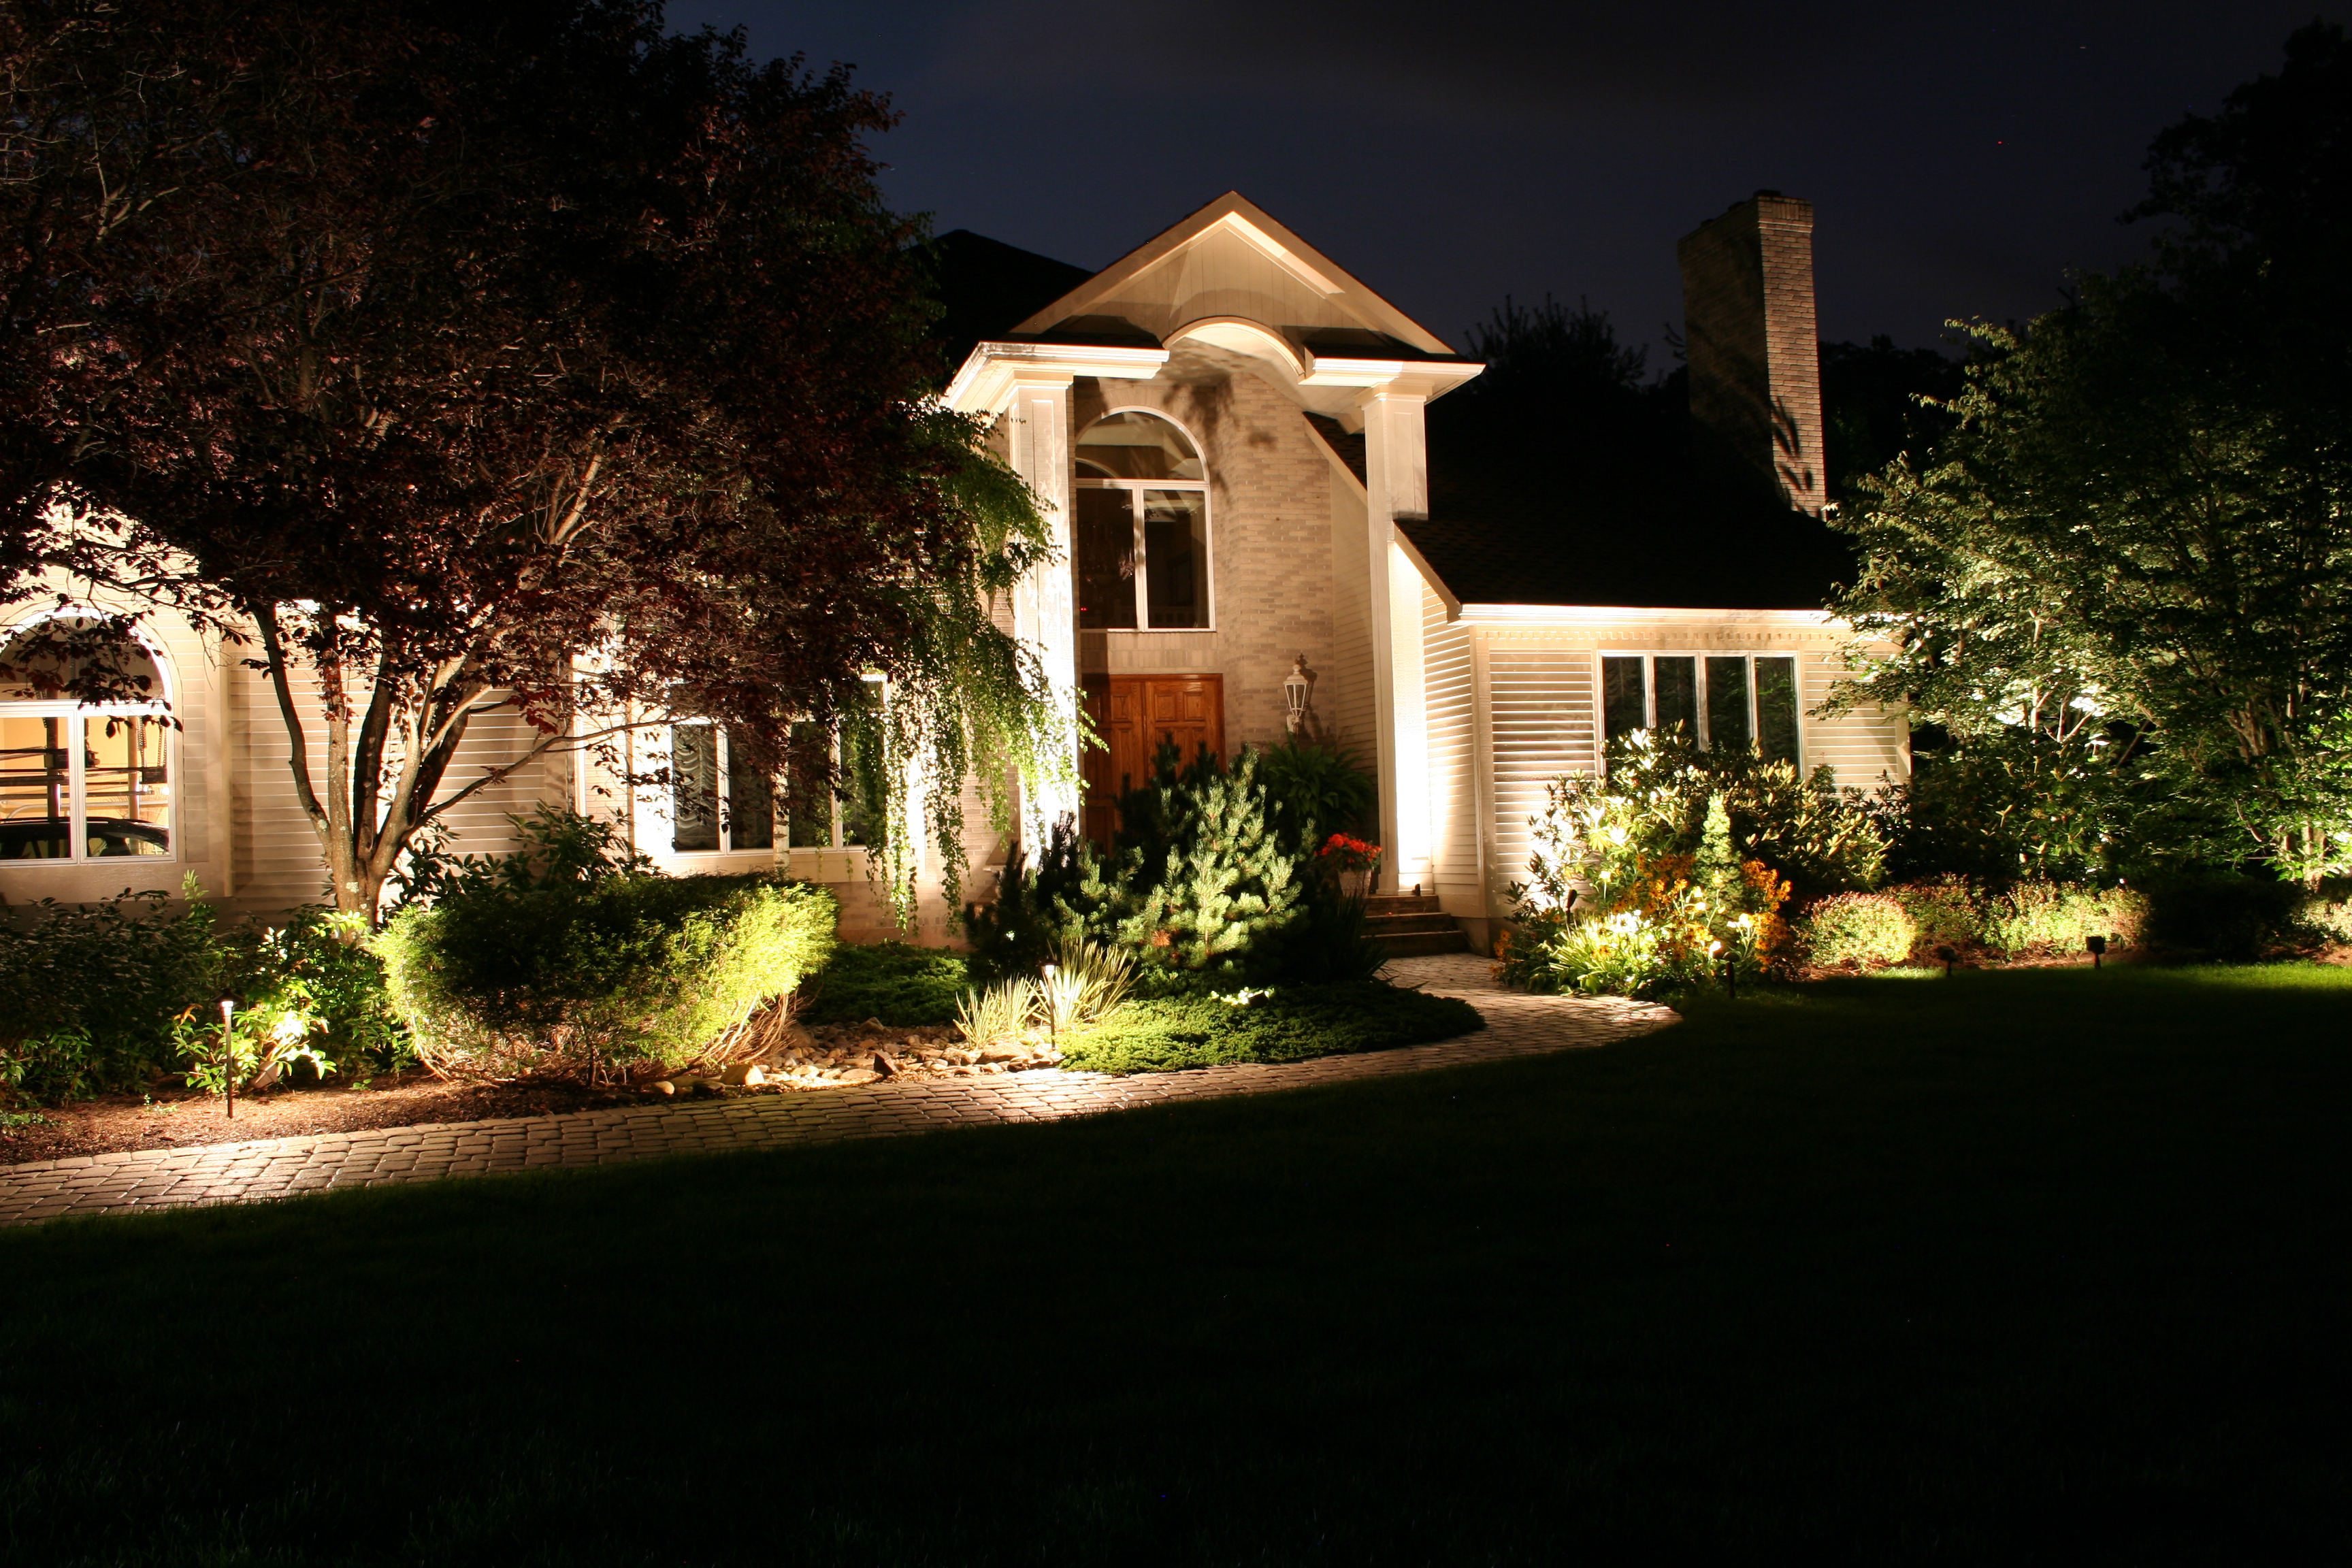 Preferred properties landscape lighting designer shows us - How to design outdoor lighting plan ...